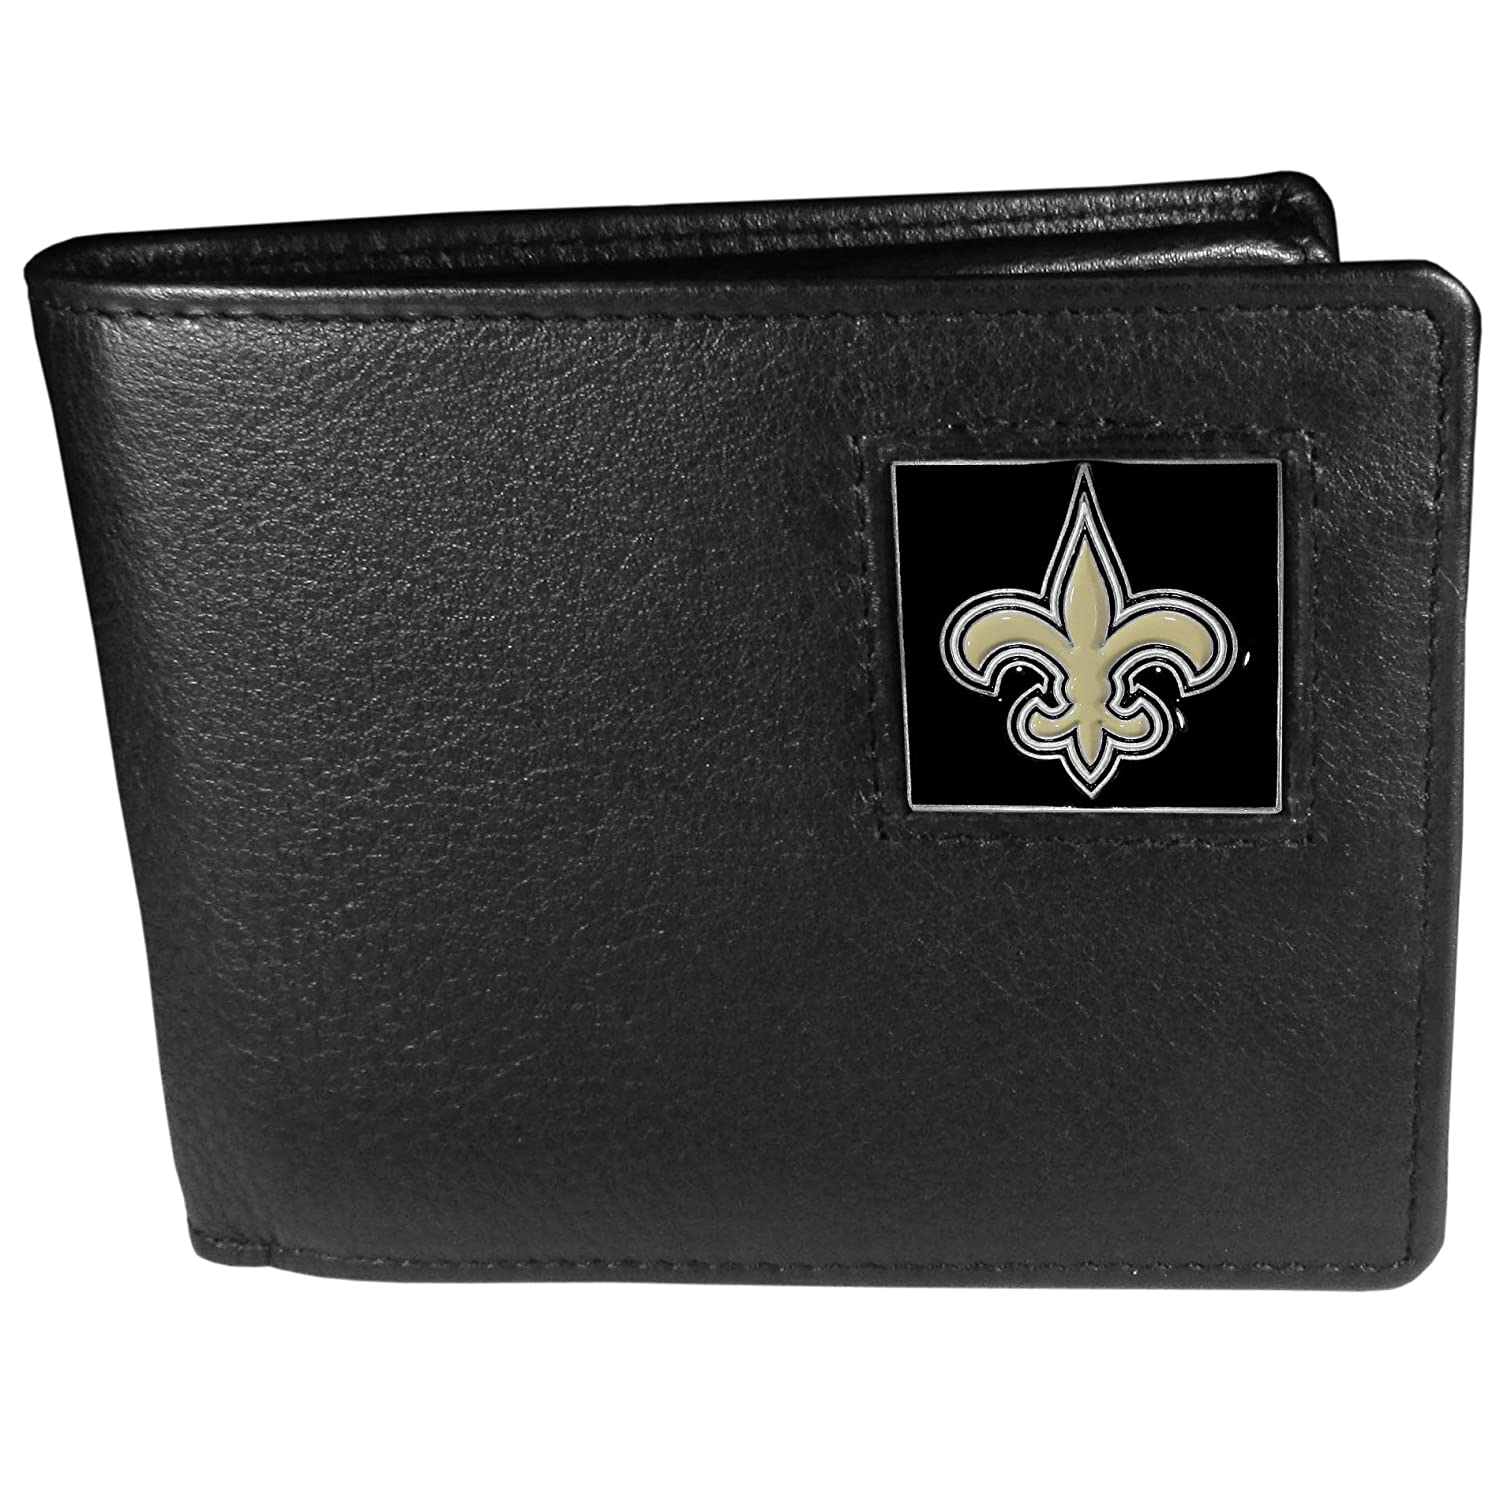 bf3eba4c Amazon.com : Siskiyou Gifts Co, Inc. NFL Womens Leather Bi-fold ...